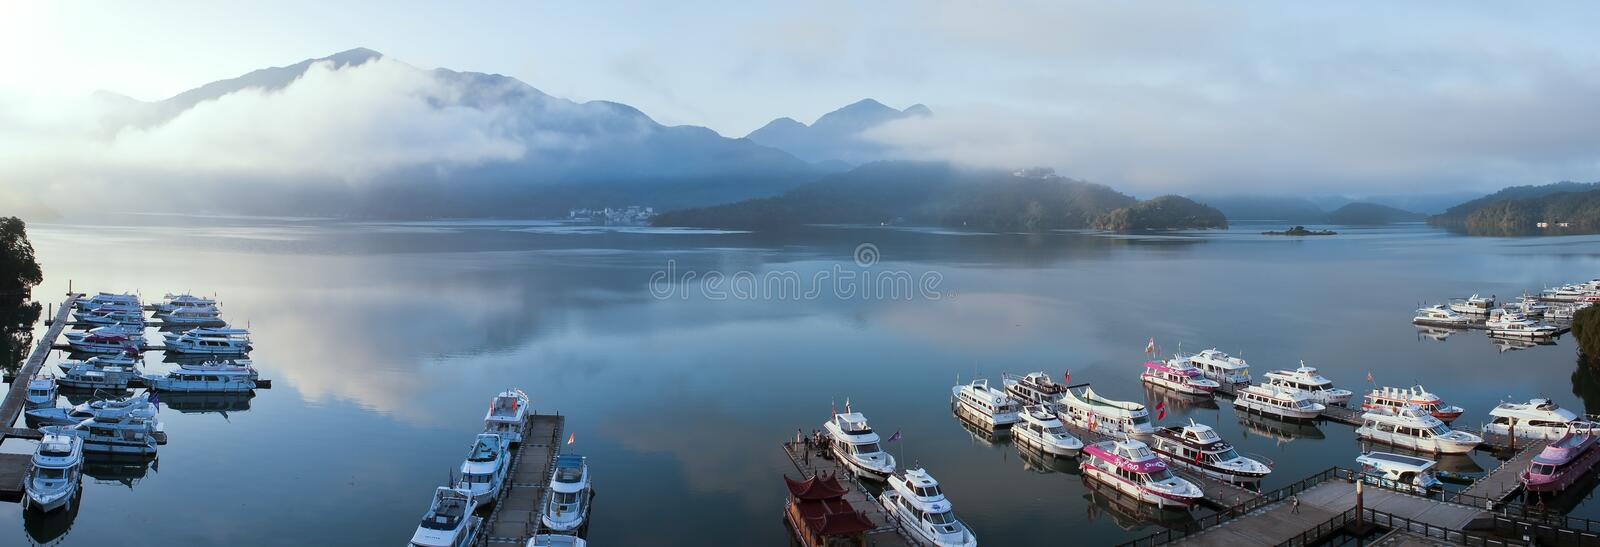 Sun Moon Lake with water reflection stock photo